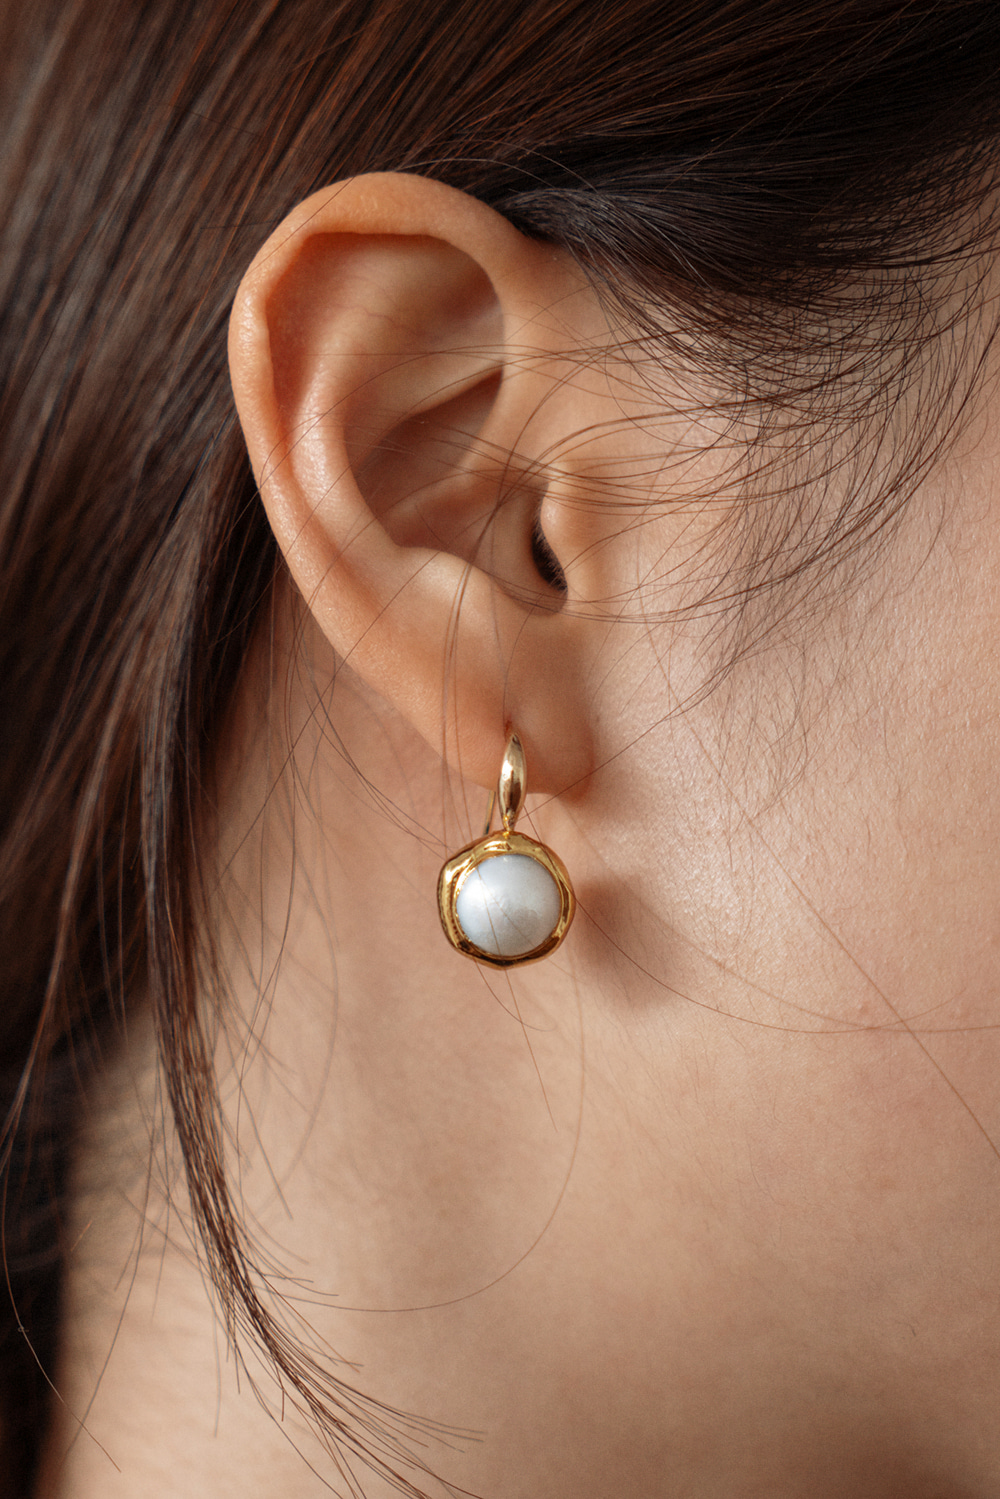 2127_Point pearl earring / 7일정도 지연